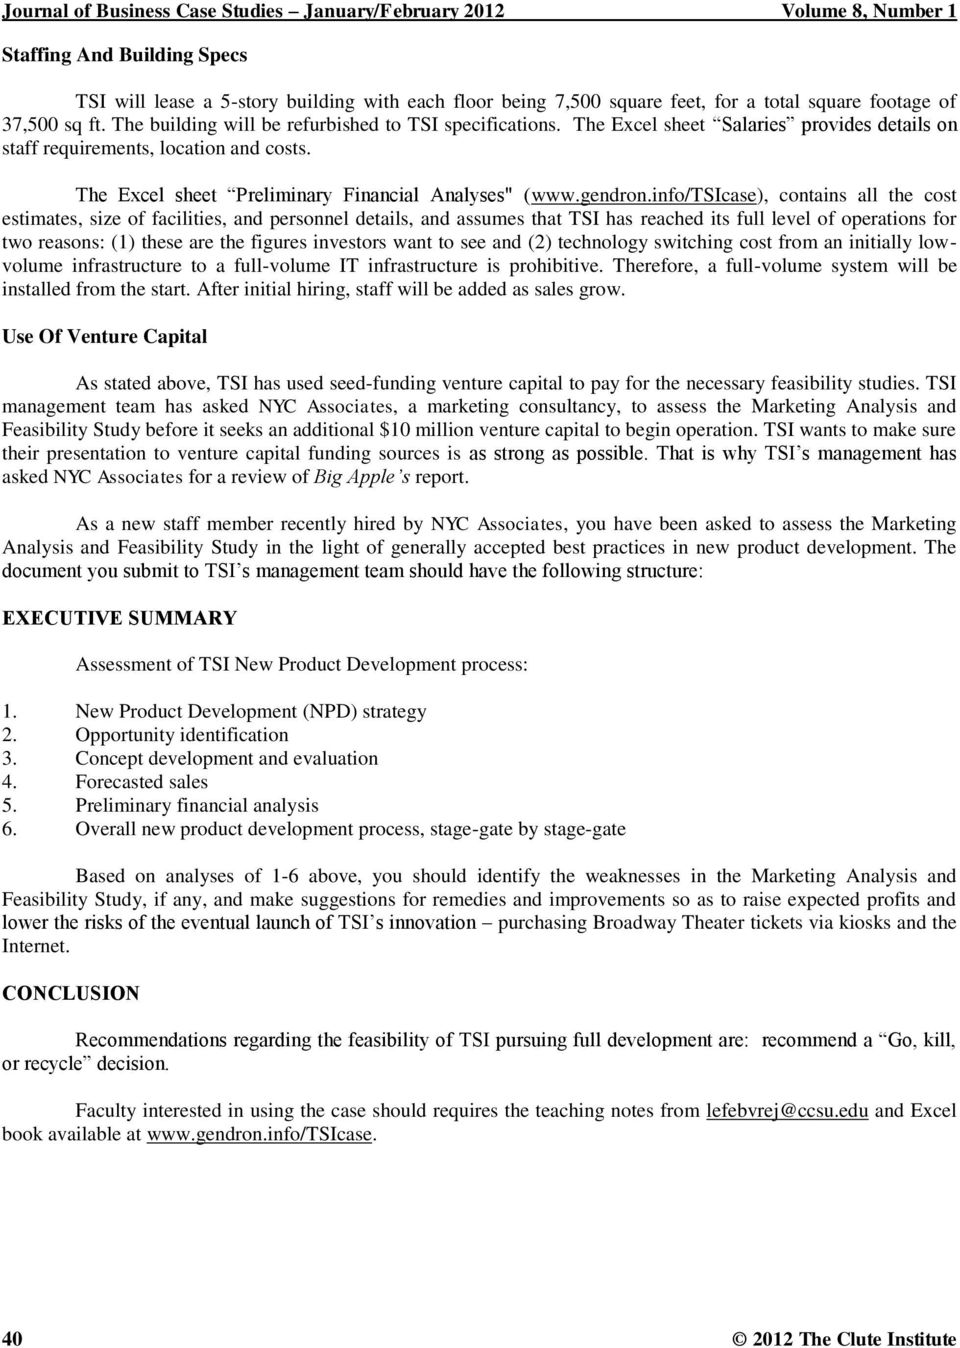 journal of business case studies jbcs Performance management at hp a review of hewlett-packards efforts to maintain the hp way', journal of business case studies (jbcs), 3(1), p 5.